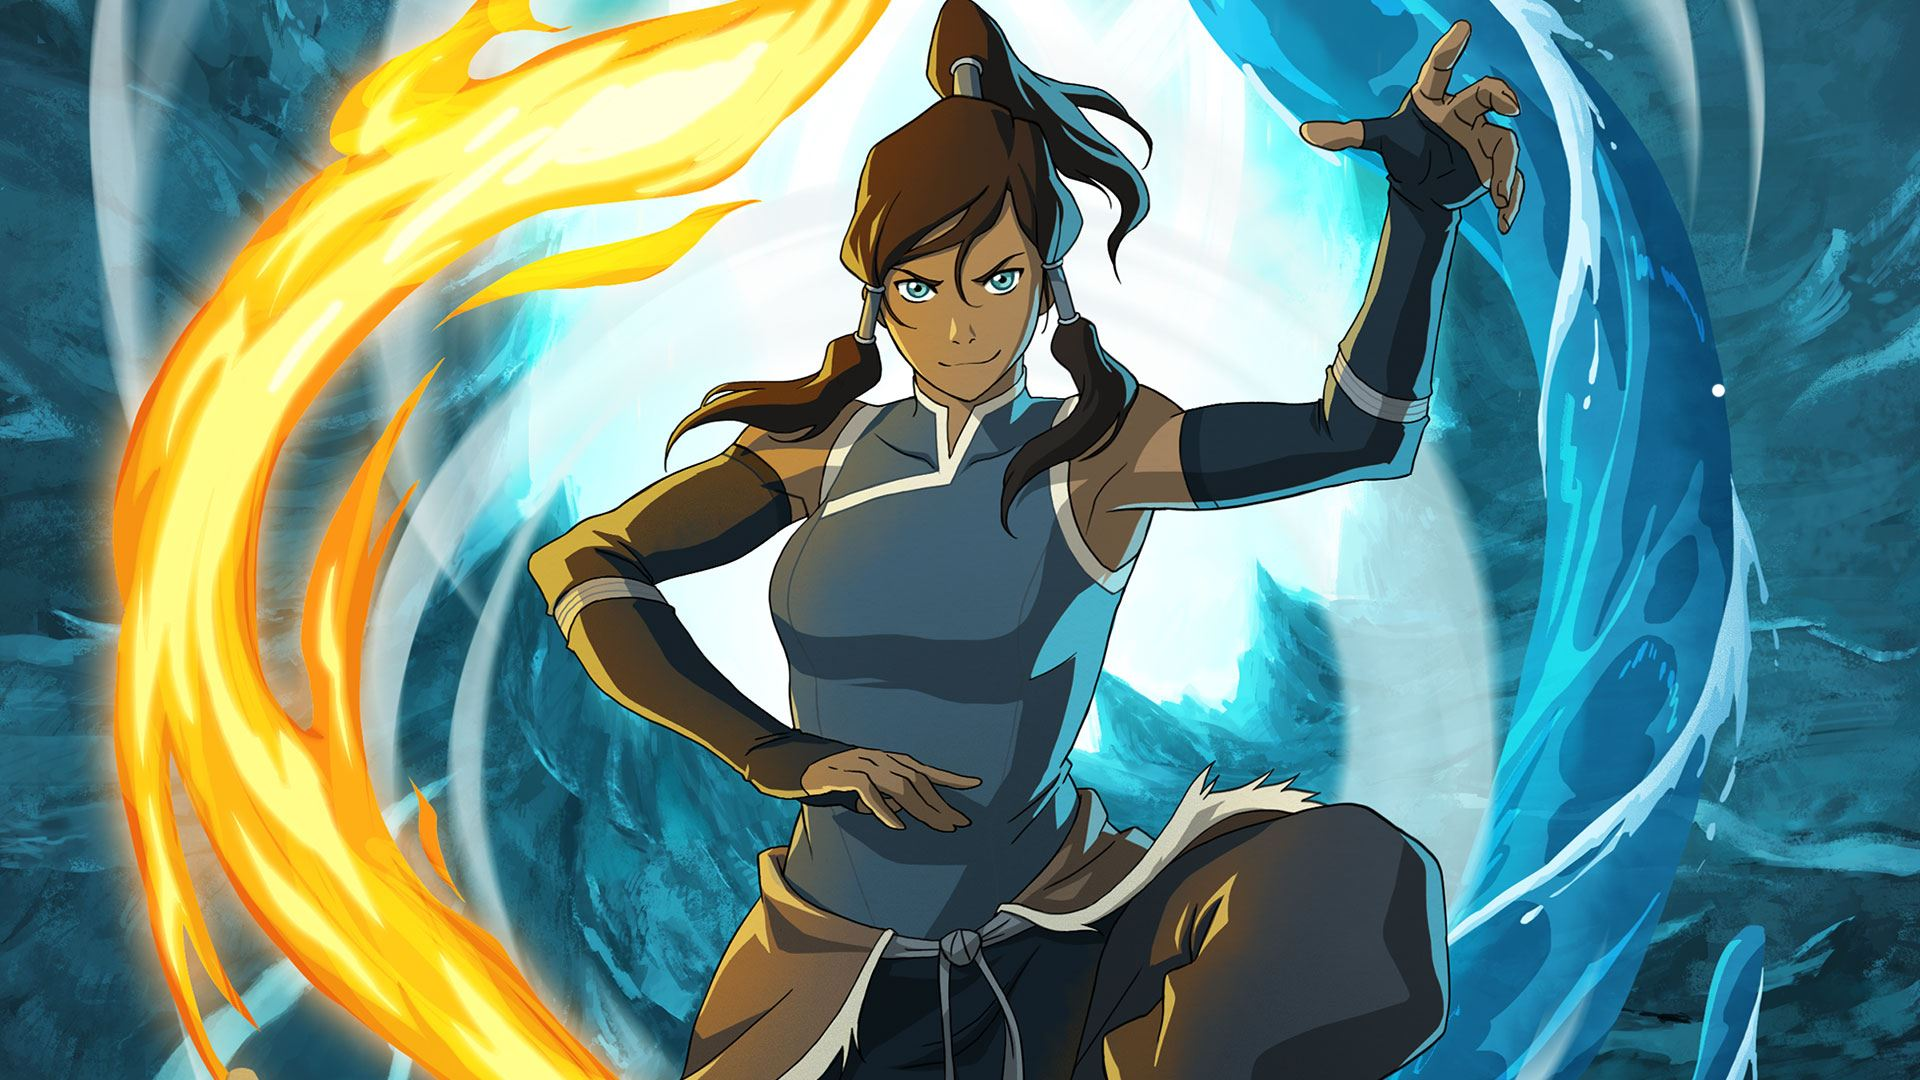 image The Legend of Korra Desktop